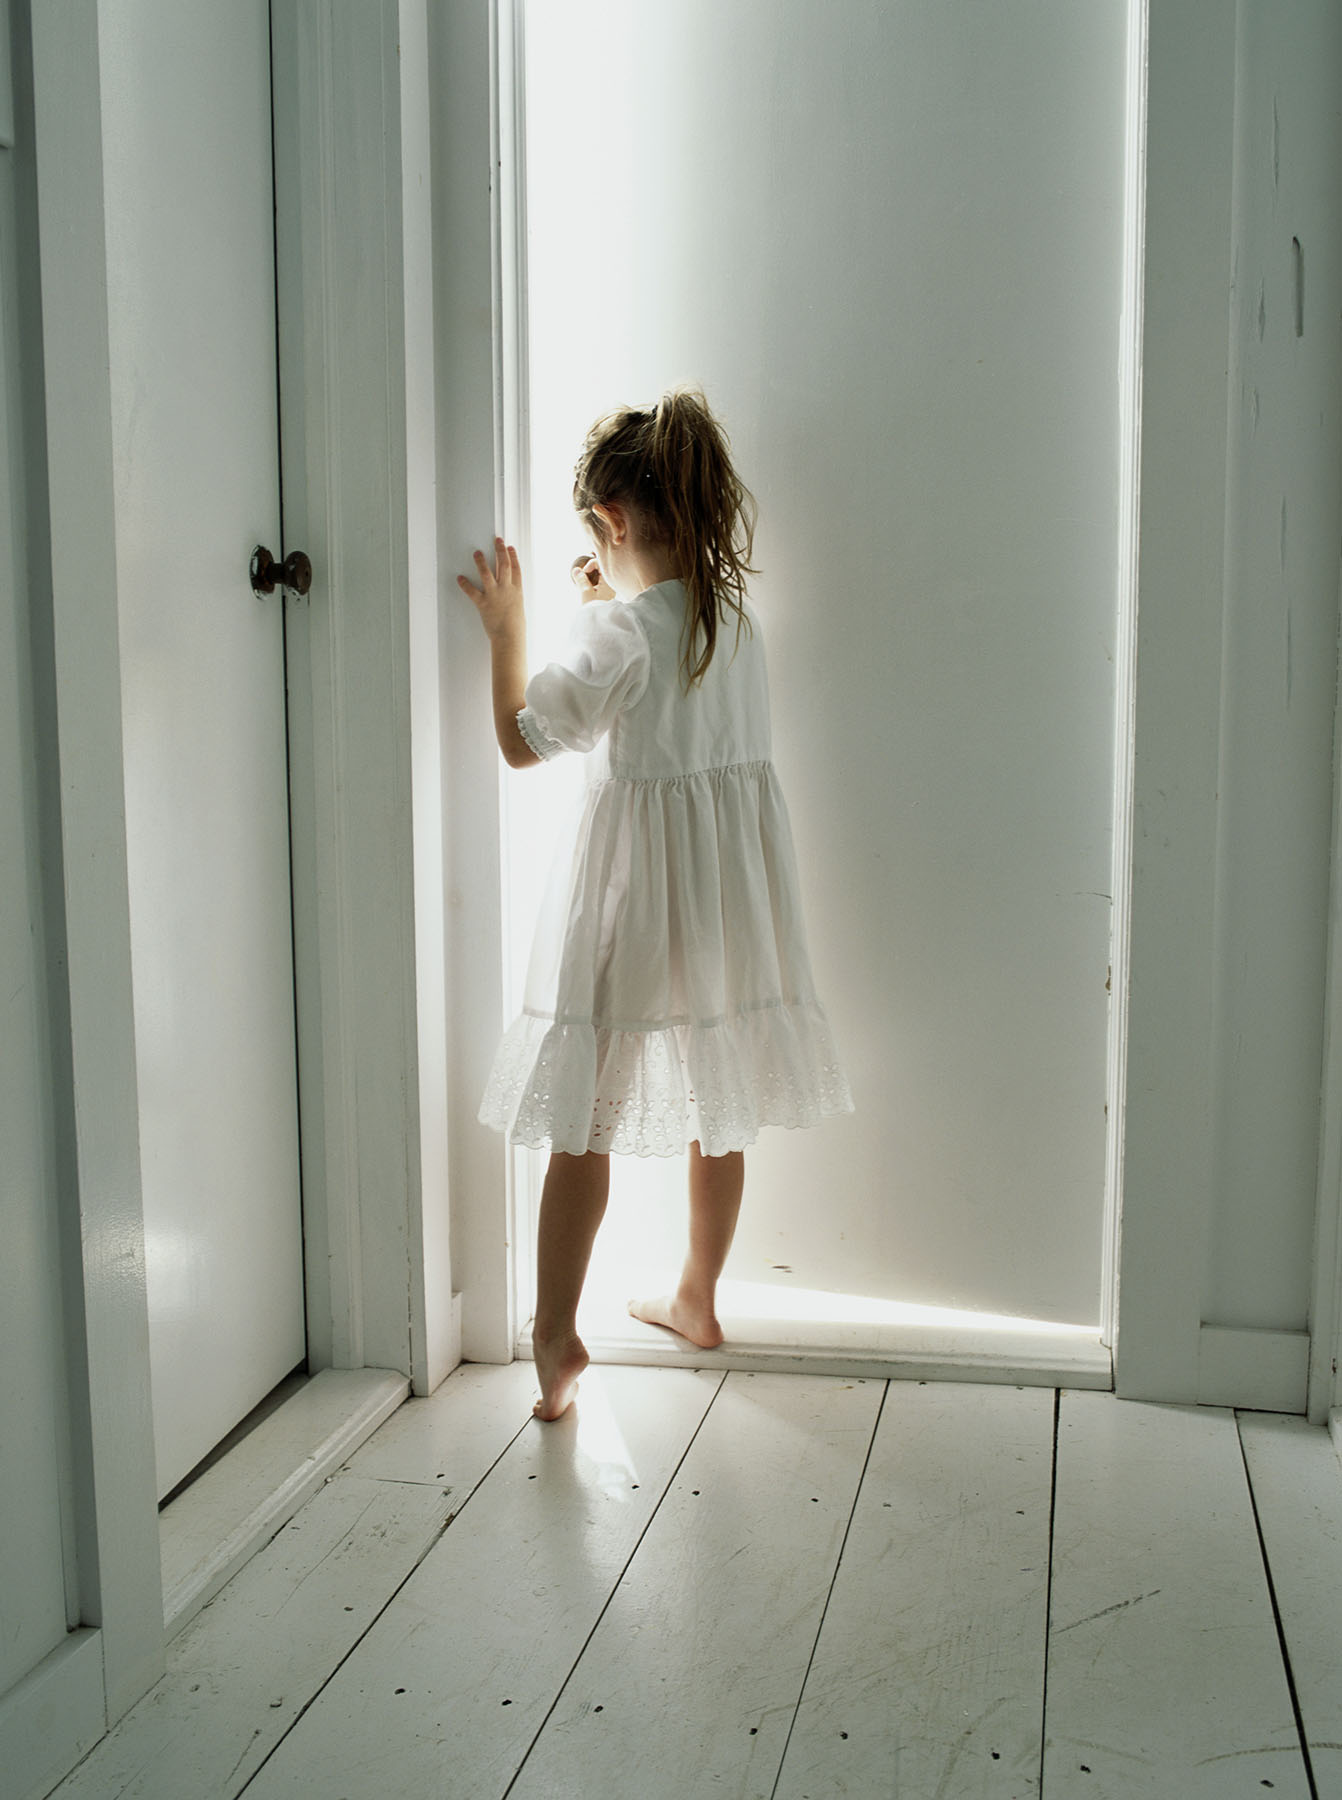 Girl standing in doorway